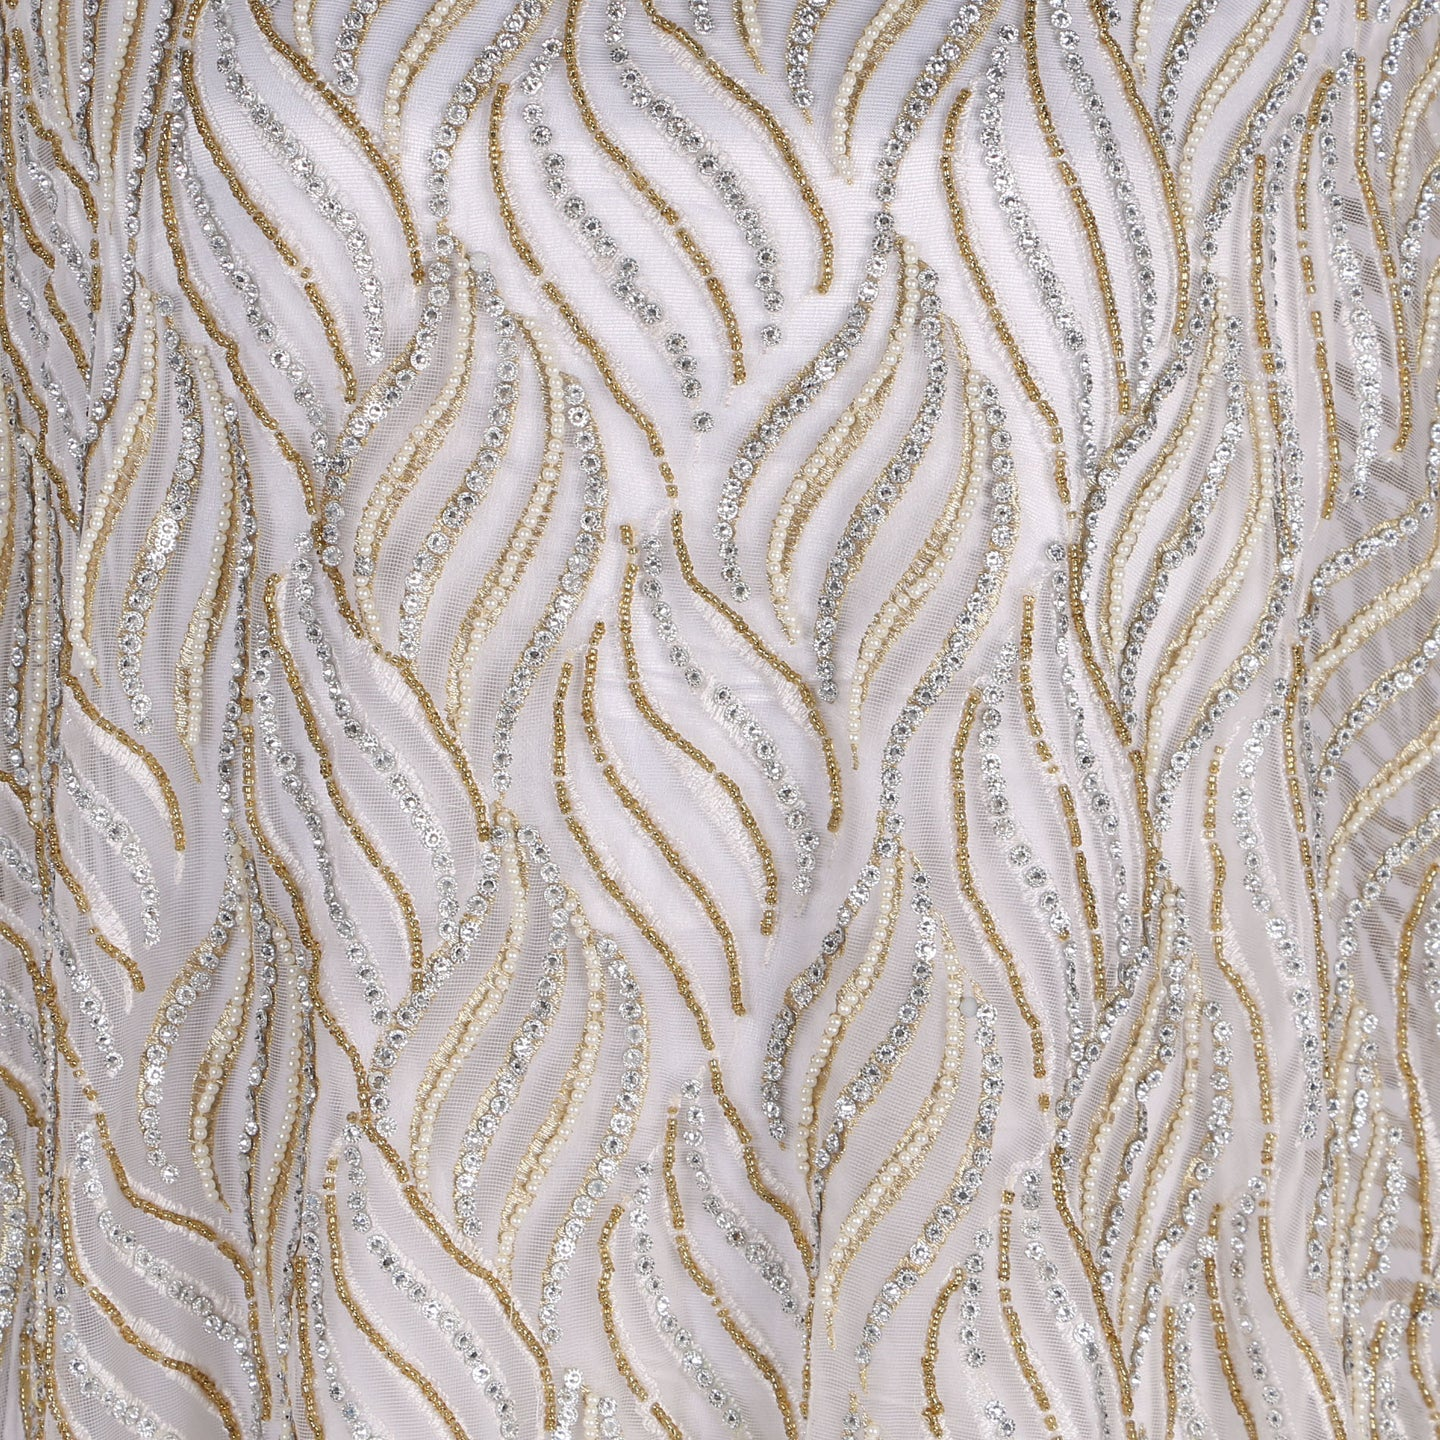 Hand Embroidered Fabric Design # 4114 - Pure White - 5 Yard Piece